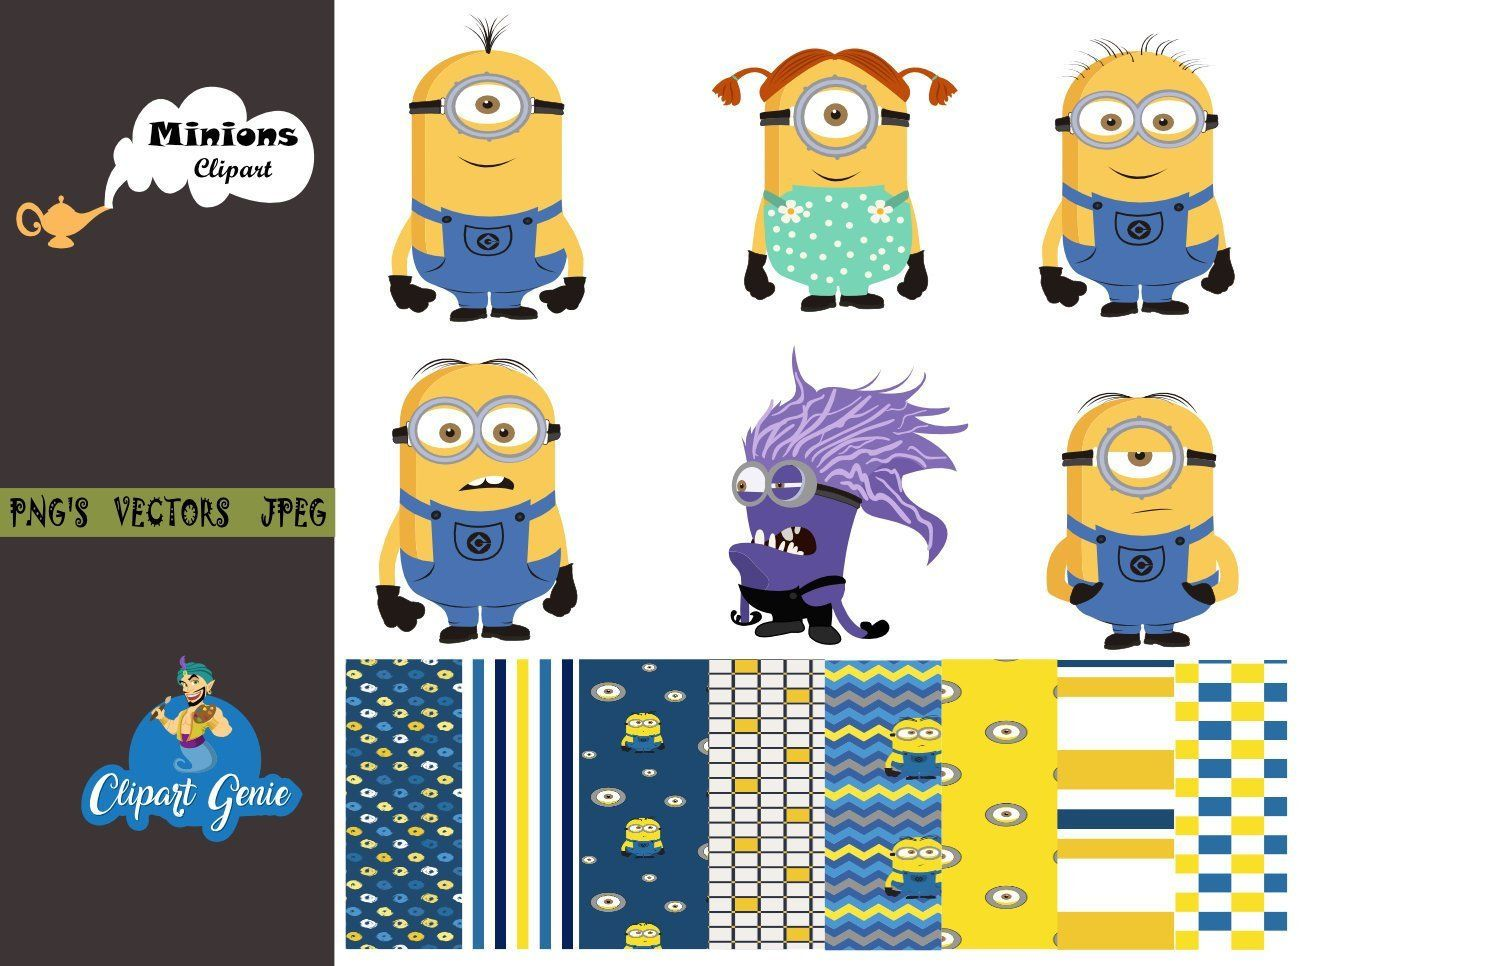 Minion clipart jpeg, Minion jpeg Transparent FREE for.